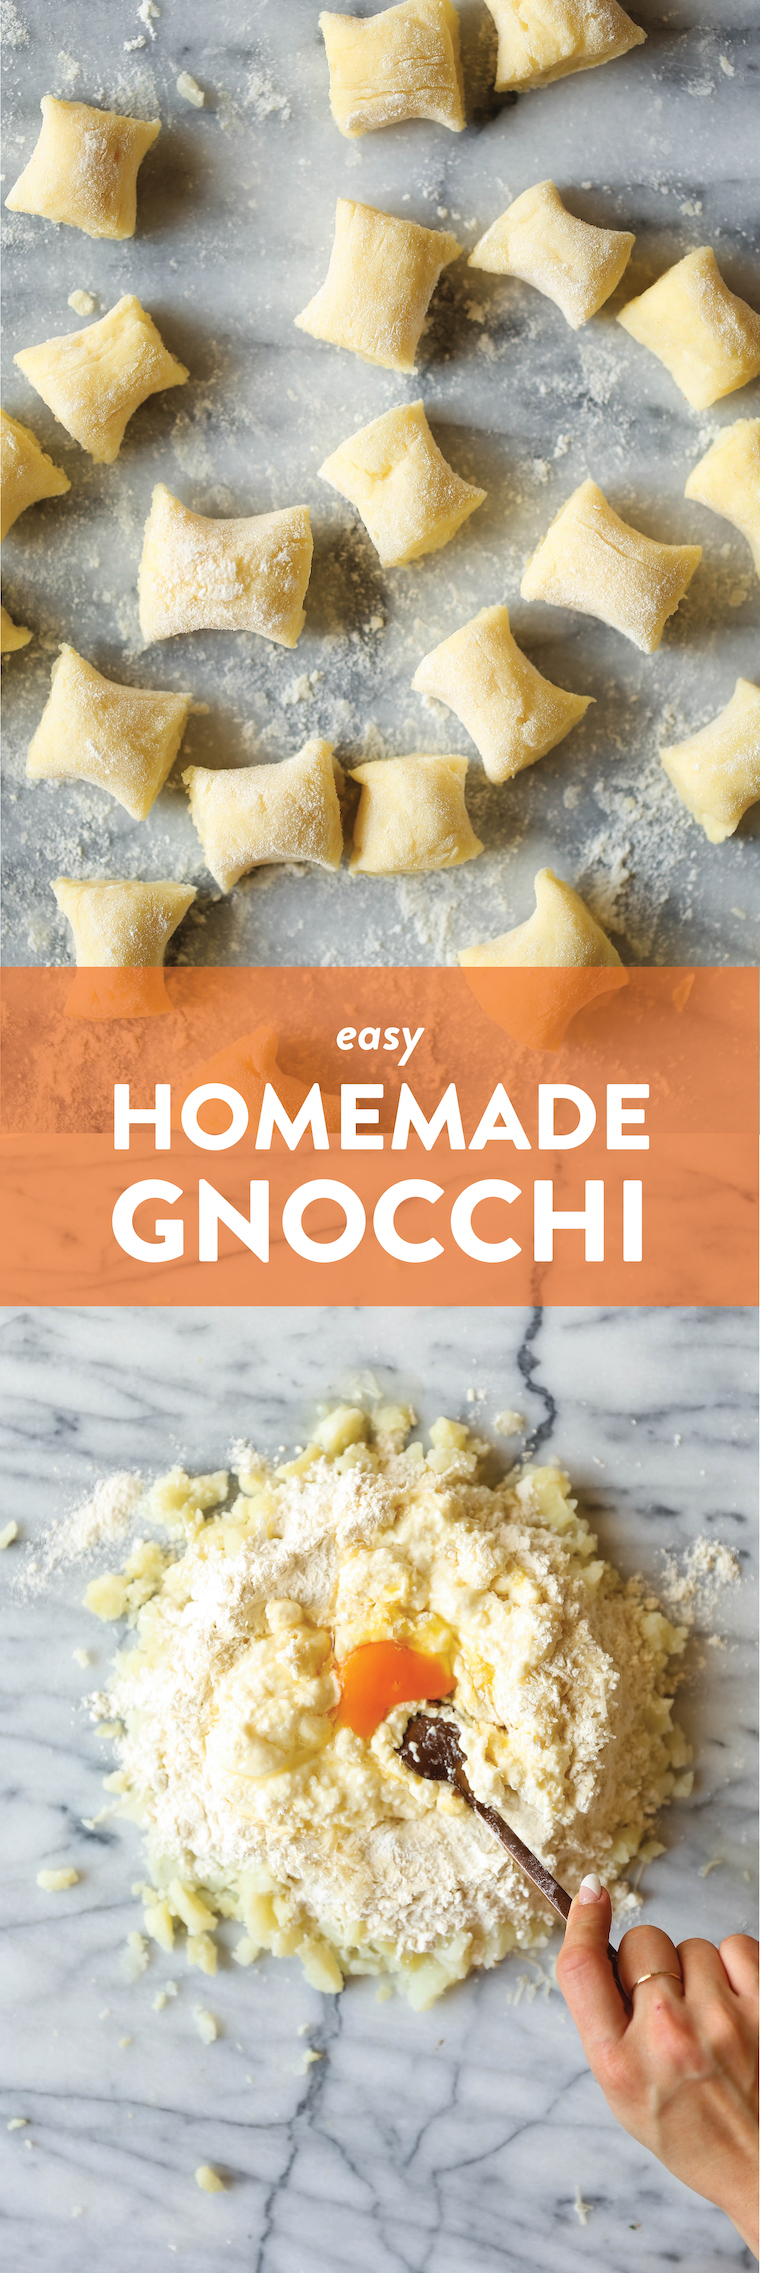 Homemade Gnocchi - Super light, pillow-y and fluffy, AND SO EASY to make with just 5 ingredients! You won't be able to go back to store-bought gnocchi!!!